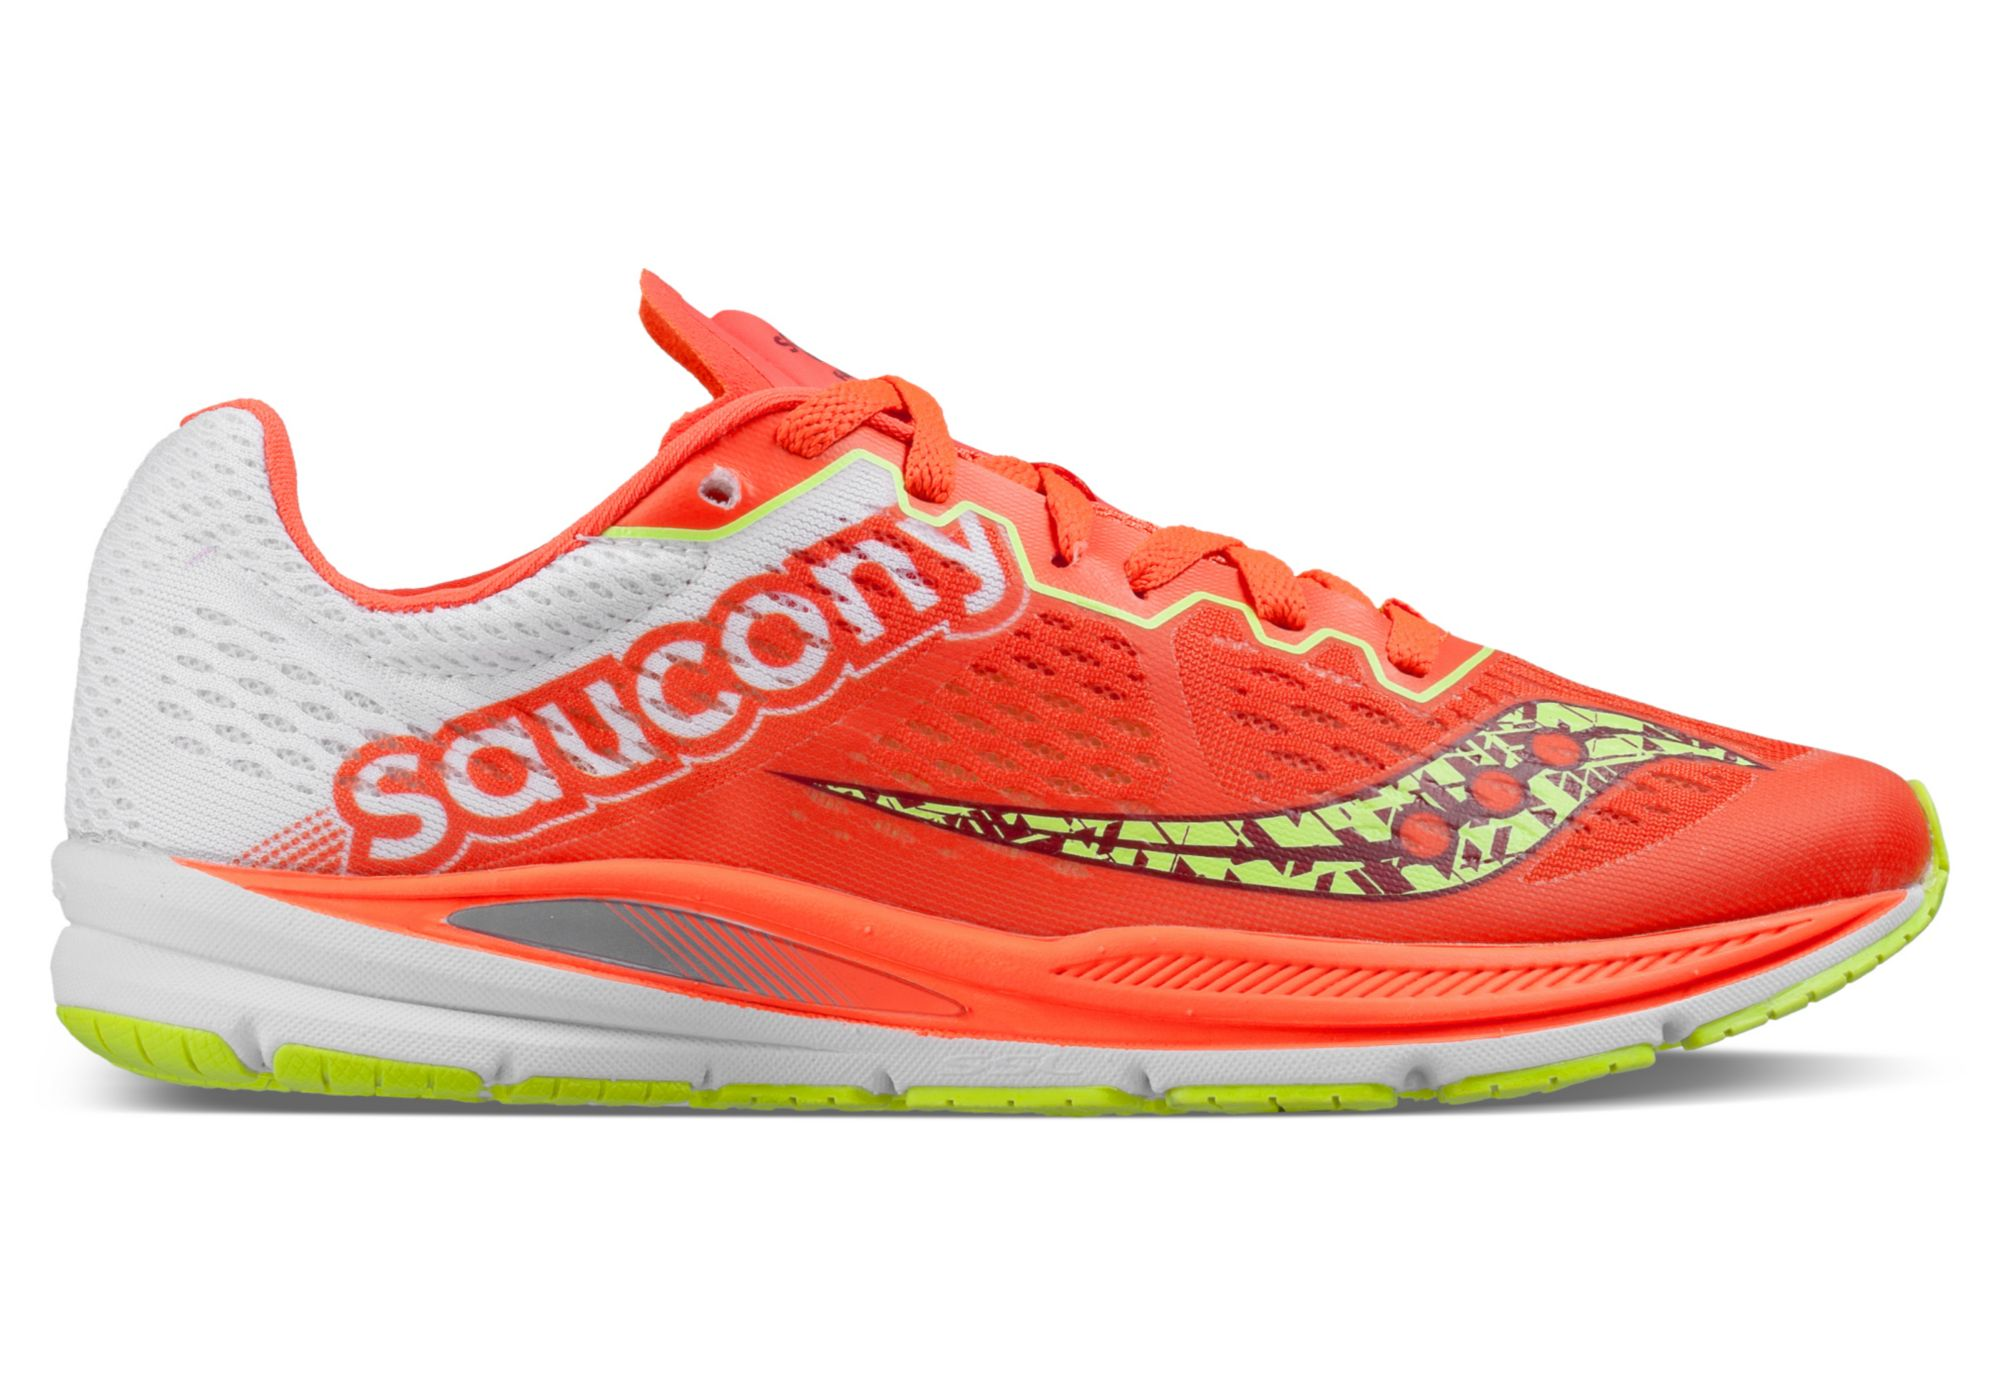 f2ff7b02 SAUCONY Fastwitch Womens' Running Shoes Red/White | Alltricks.com